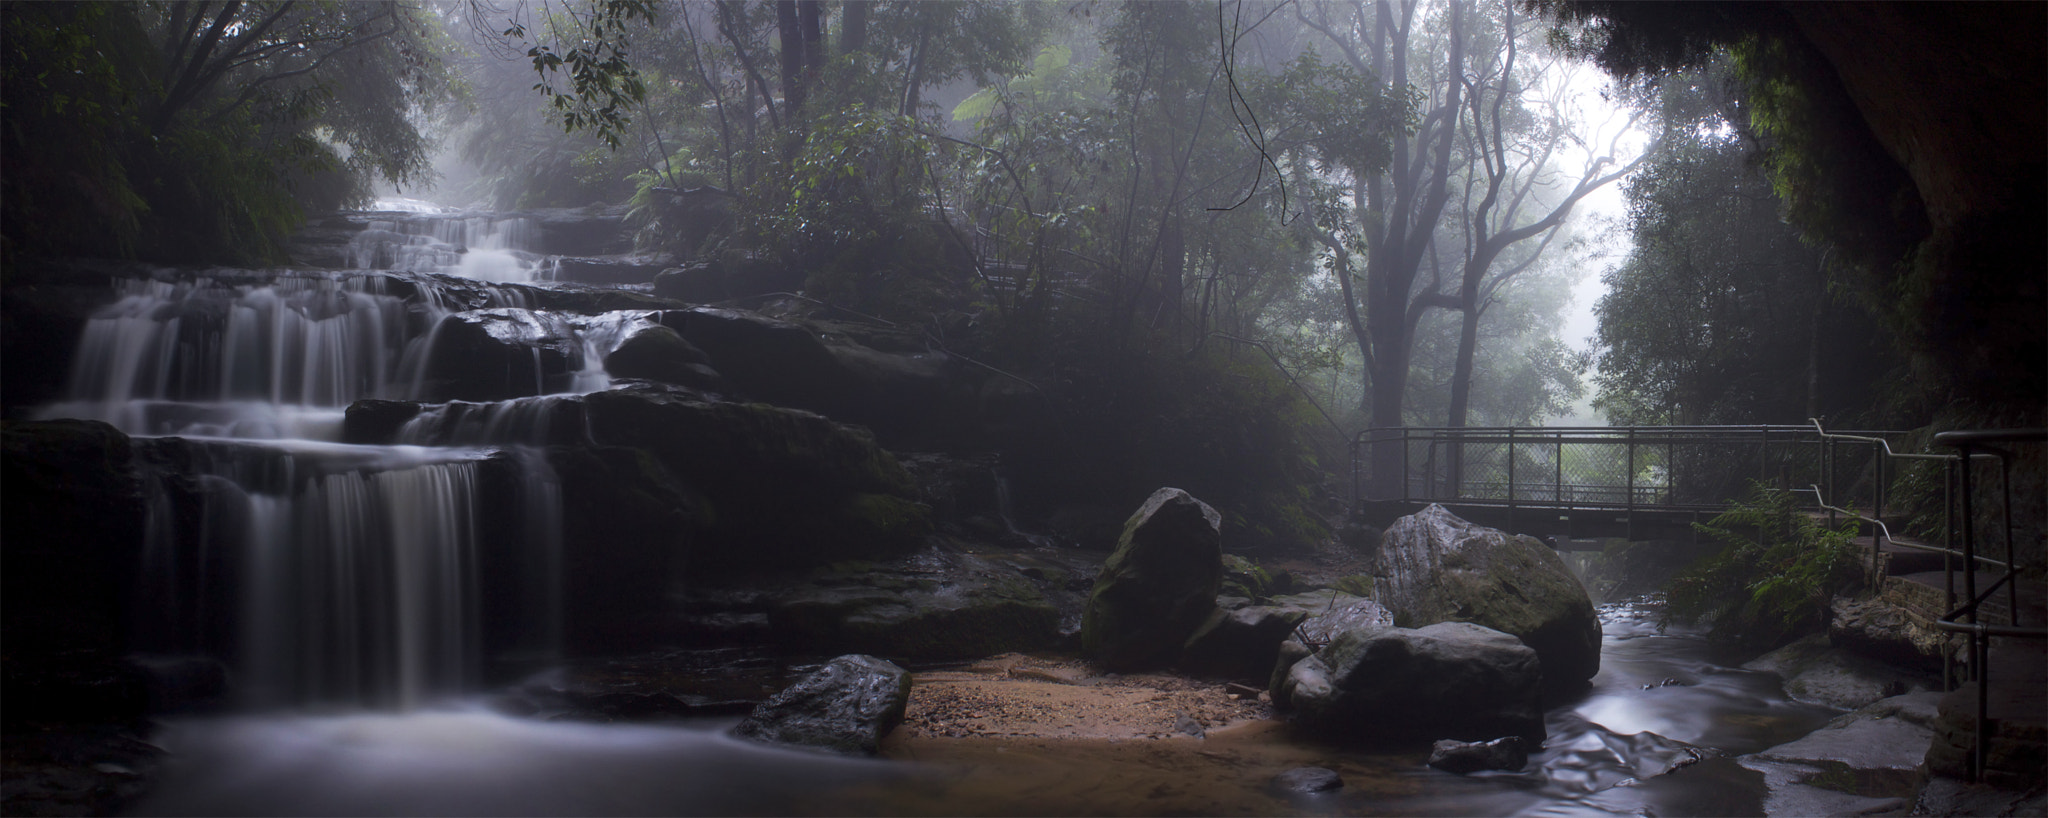 Photograph Taking In The Cascades    LEURA CASCADES by Rhys Pope on 500px